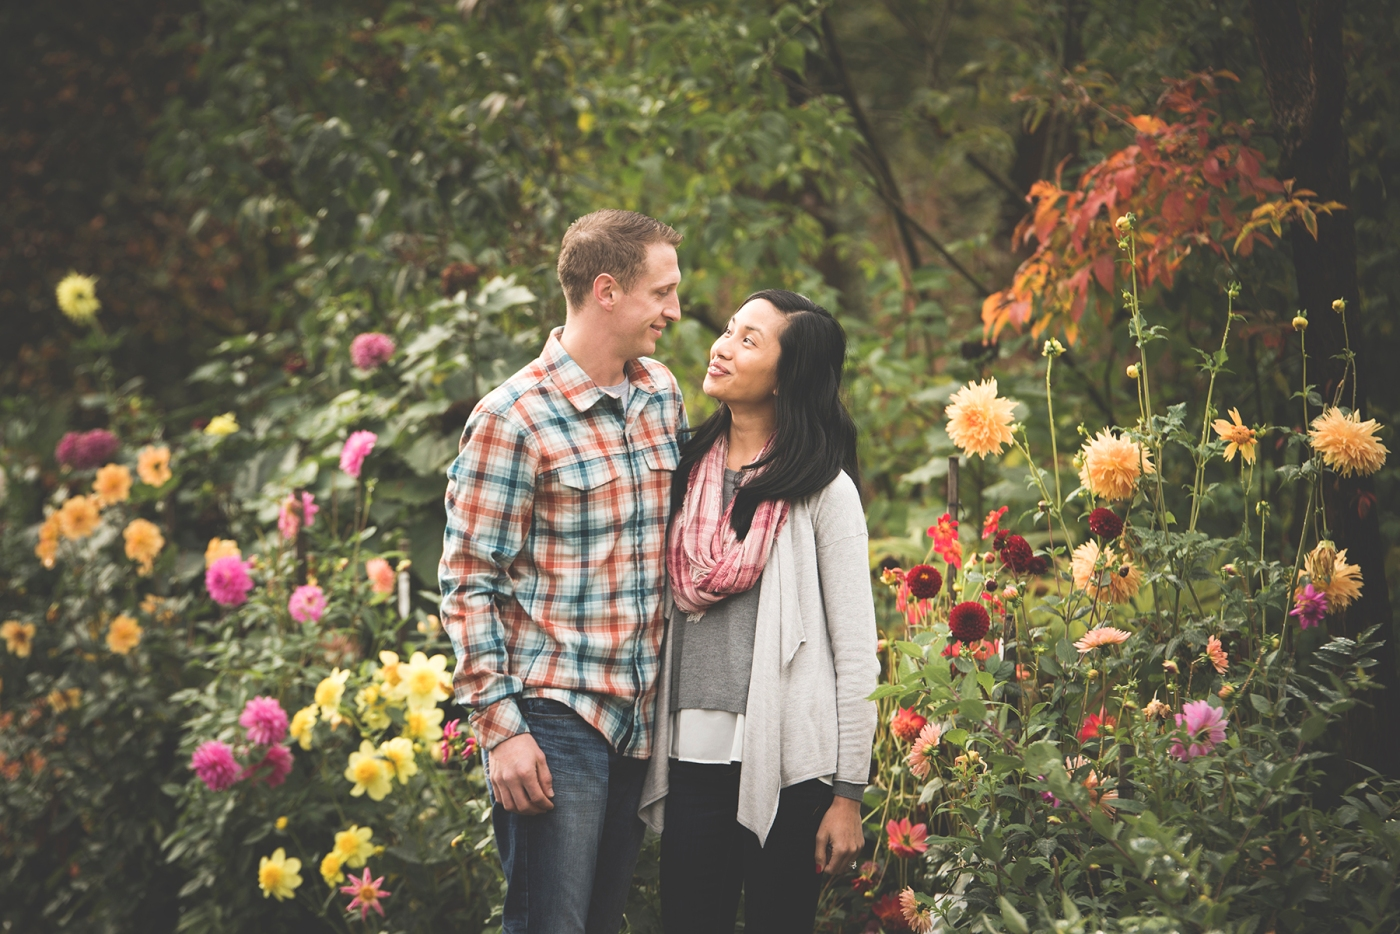 jane-speleers-photography-ju-bri-holiday-october-bellevue-botanical-garden-engagement-2016_dsc_5636